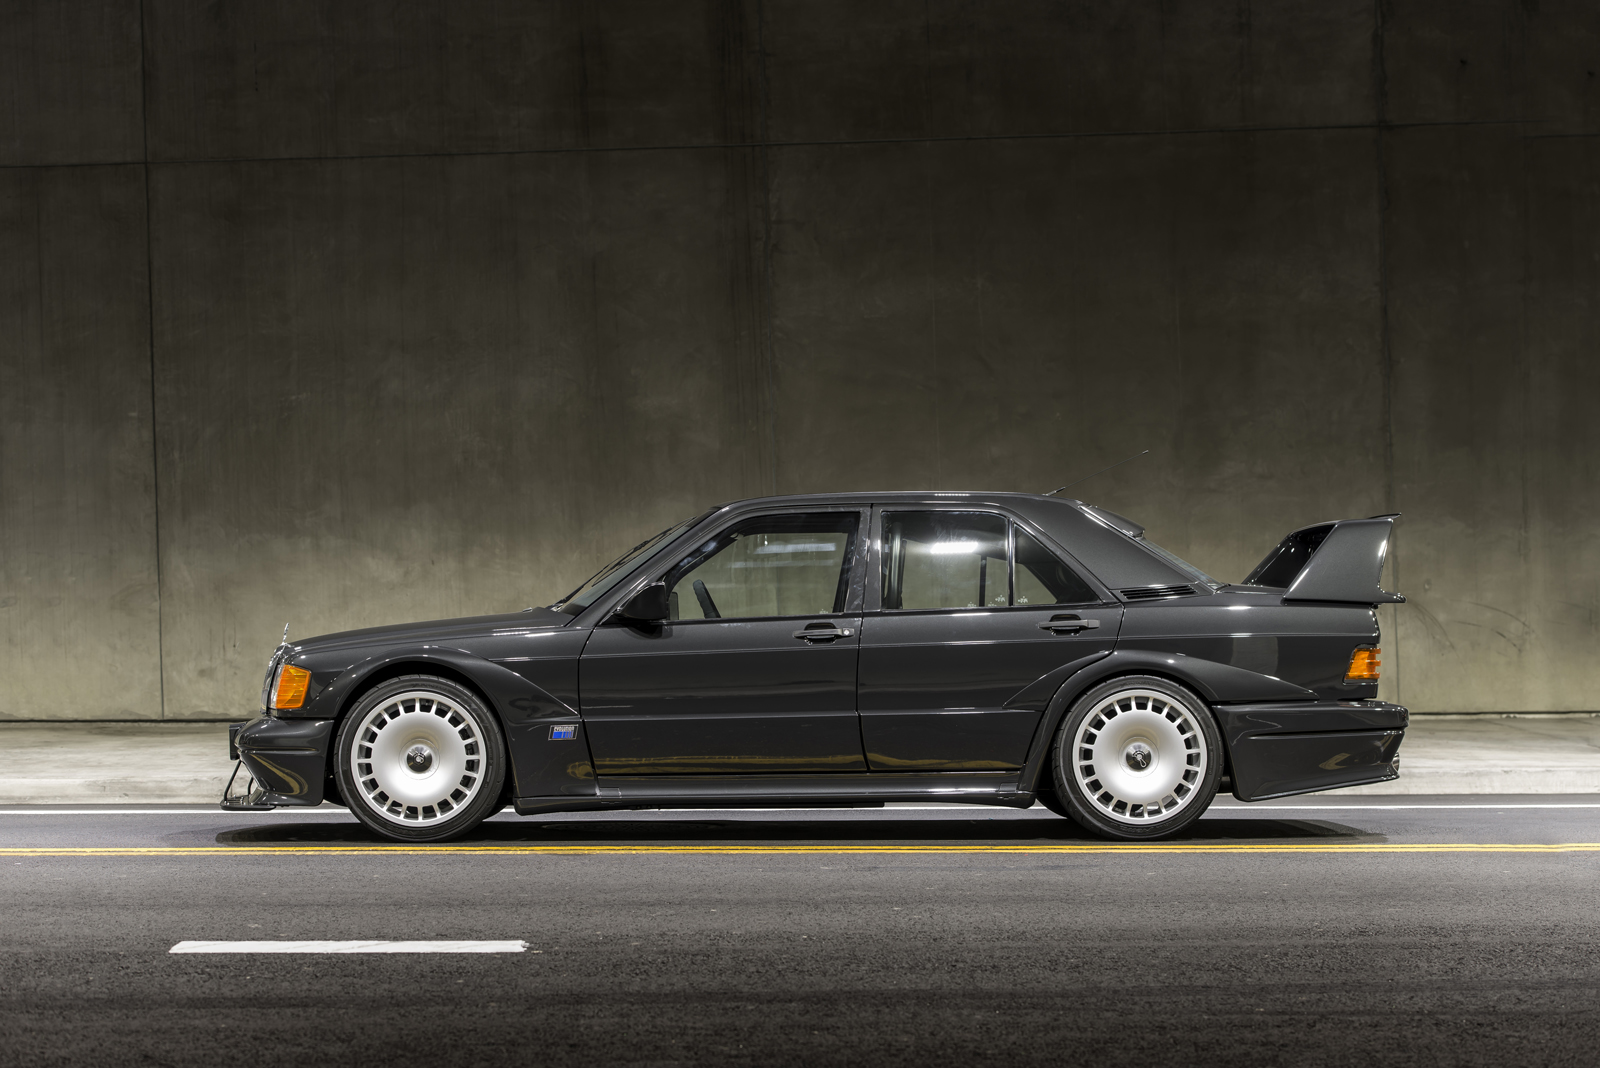 Mercedes 190E 2.5-16 Evo II in auction (9)